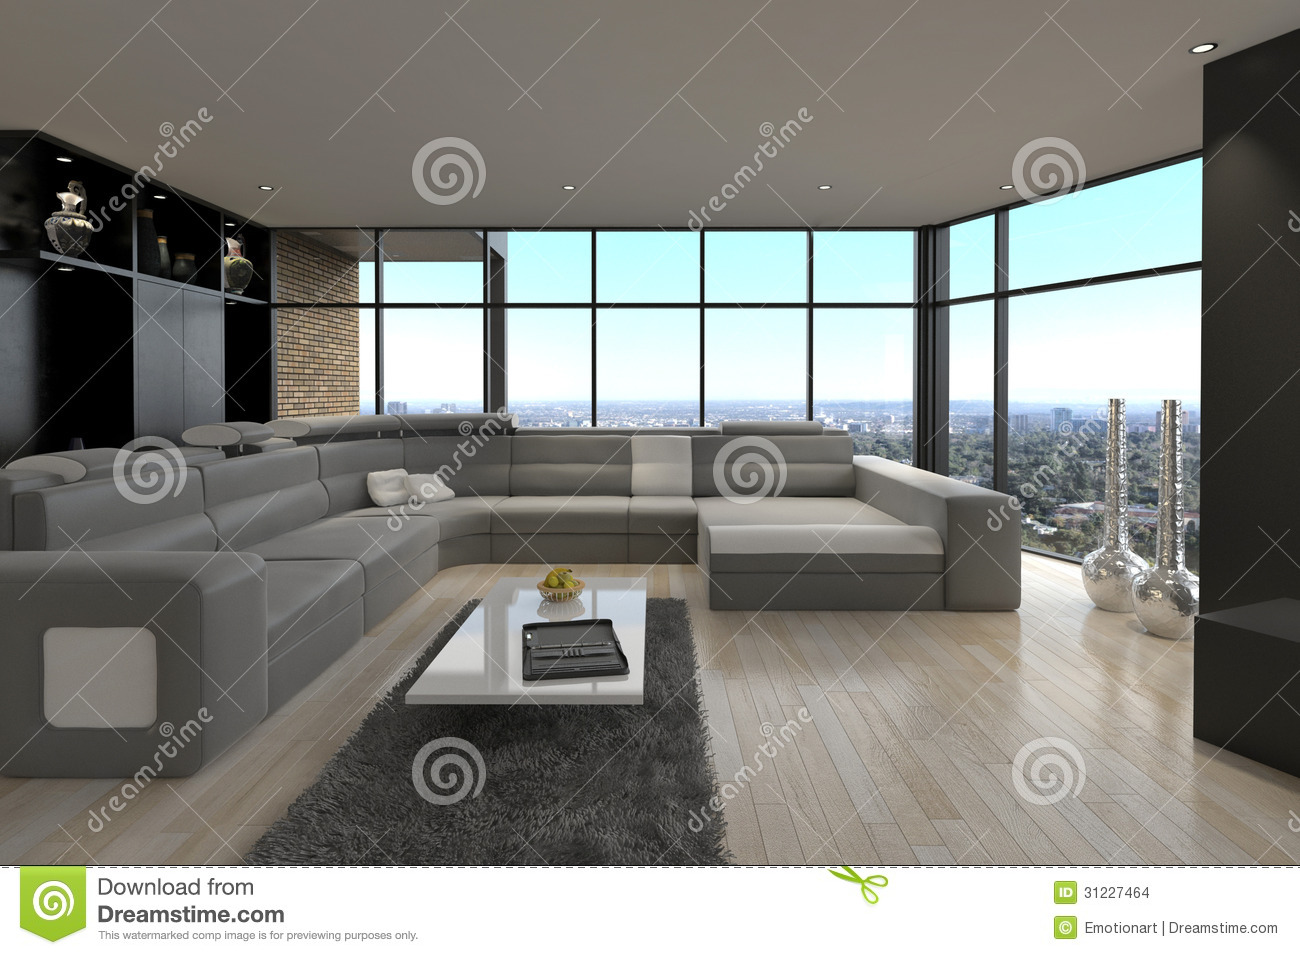 salon moderne impressionnant de grenier int rieur d 39 architecture images stock image 31227464. Black Bedroom Furniture Sets. Home Design Ideas